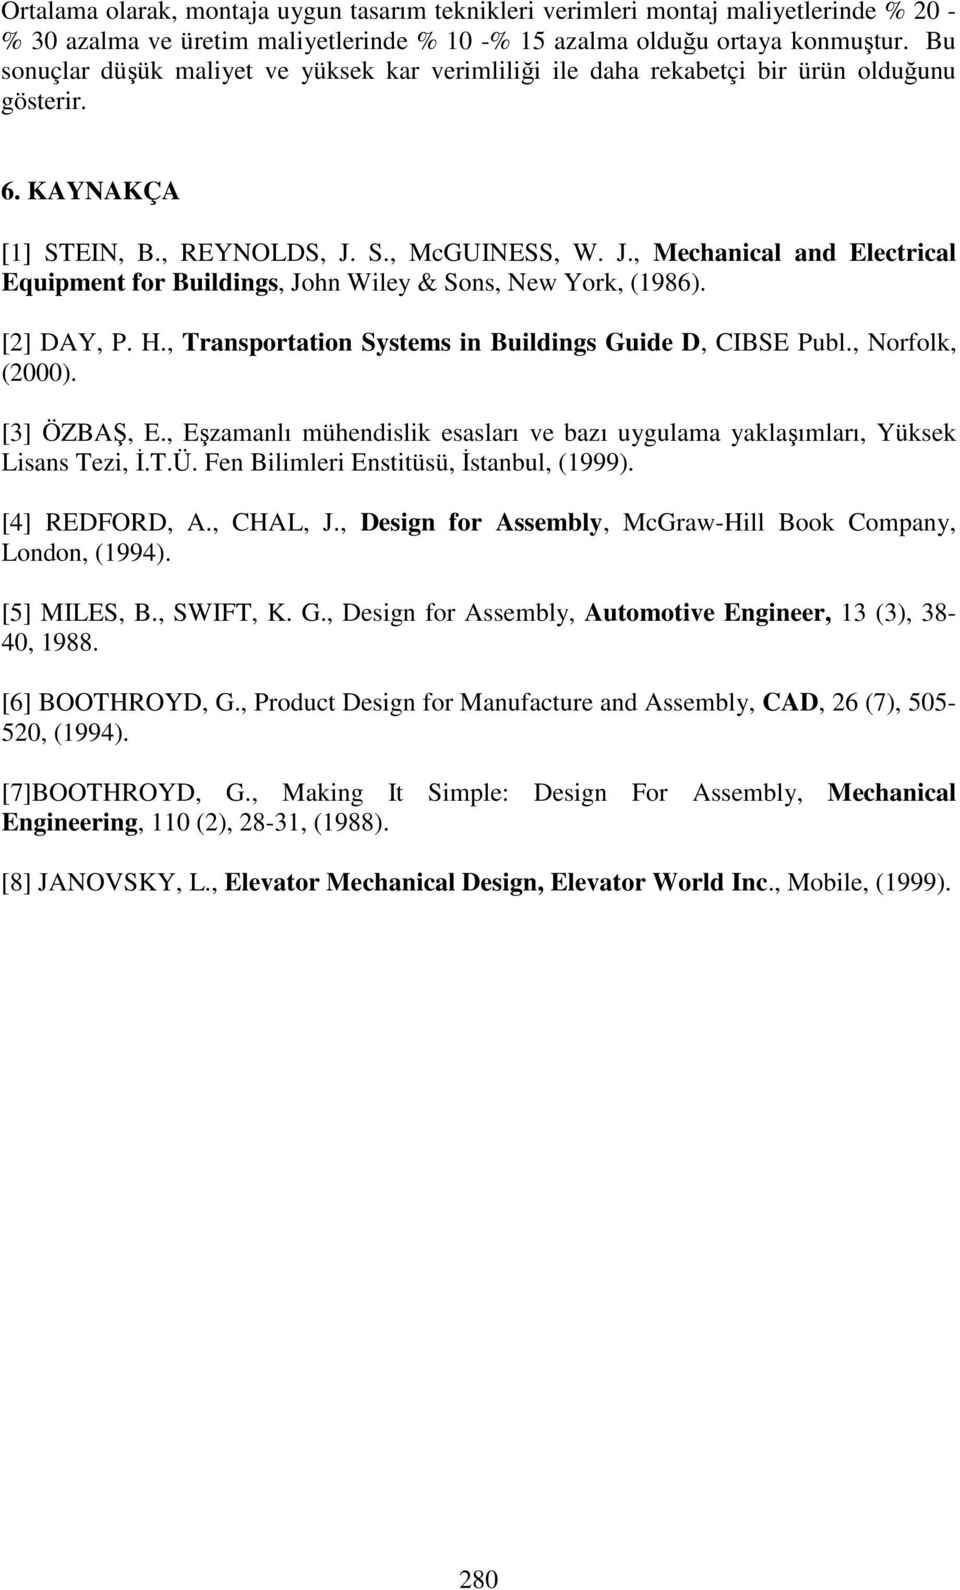 S., McGUINESS, W. J., Mechanical and Electrical Equipment for Buildings, John Wiley & Sons, New York, (1986). [2] DAY, P. H., Transportation Systems in Buildings Guide D, CIBSE Publ., Norfolk, (2000).